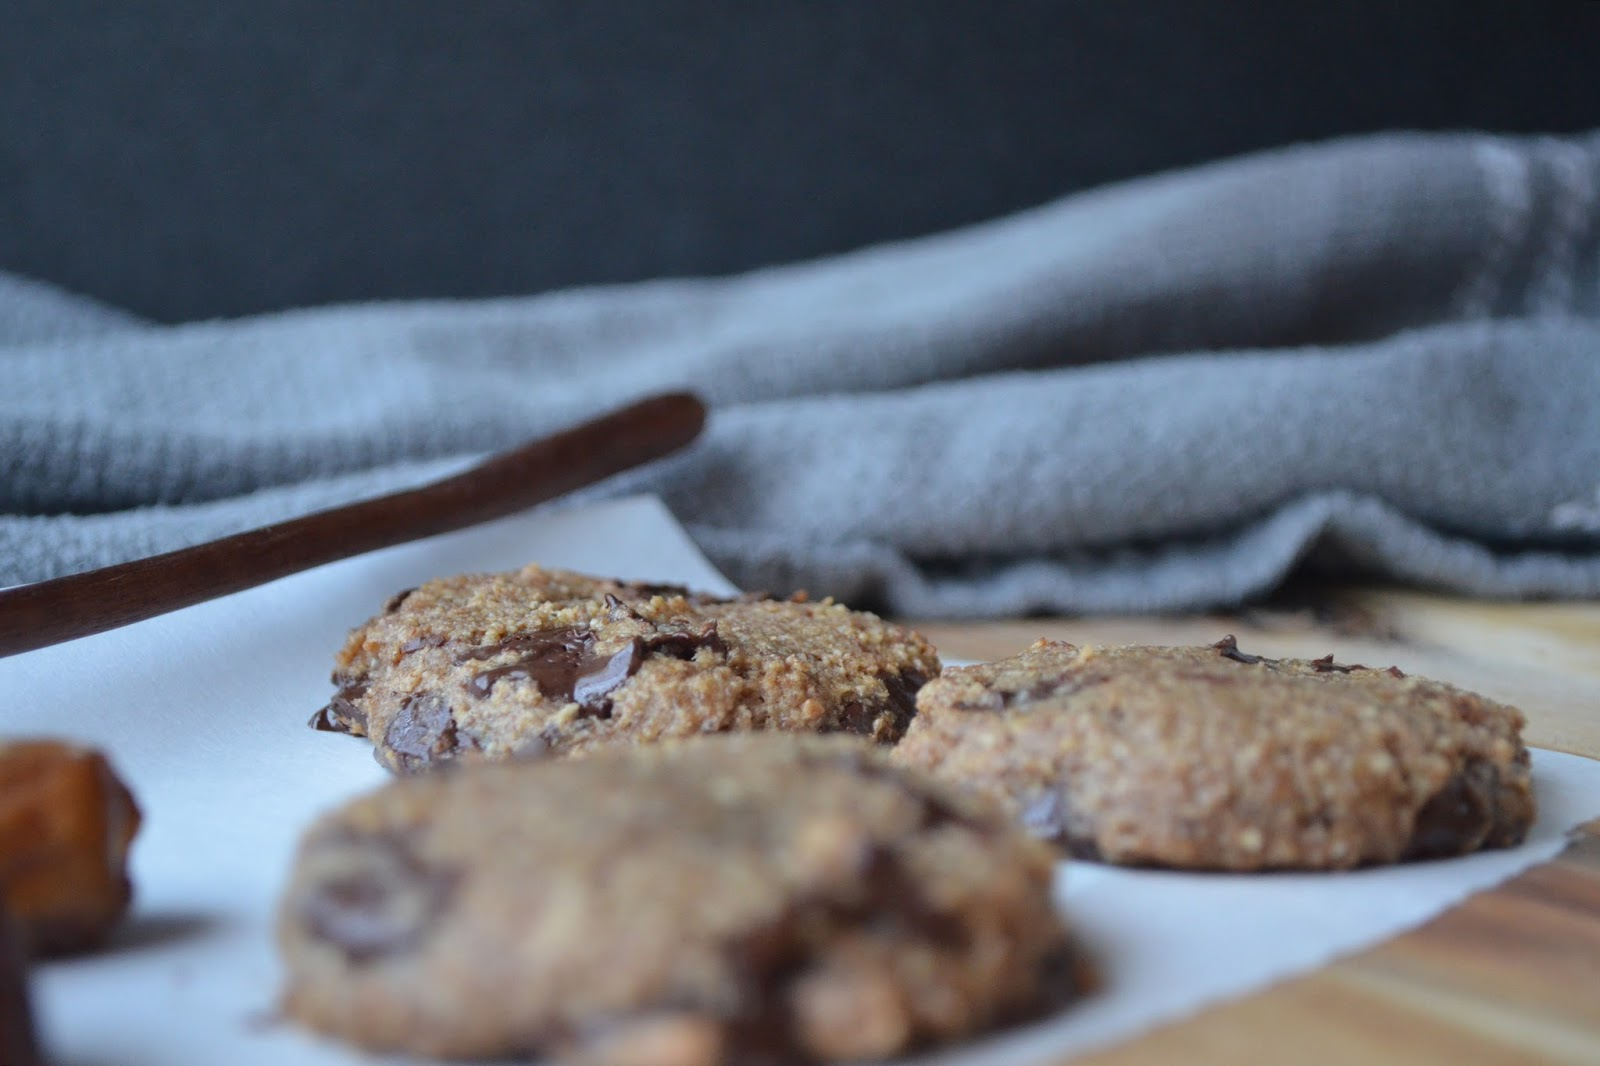 Petite Panettiere: Date Oat & Nut Chocolate Chip Cookies